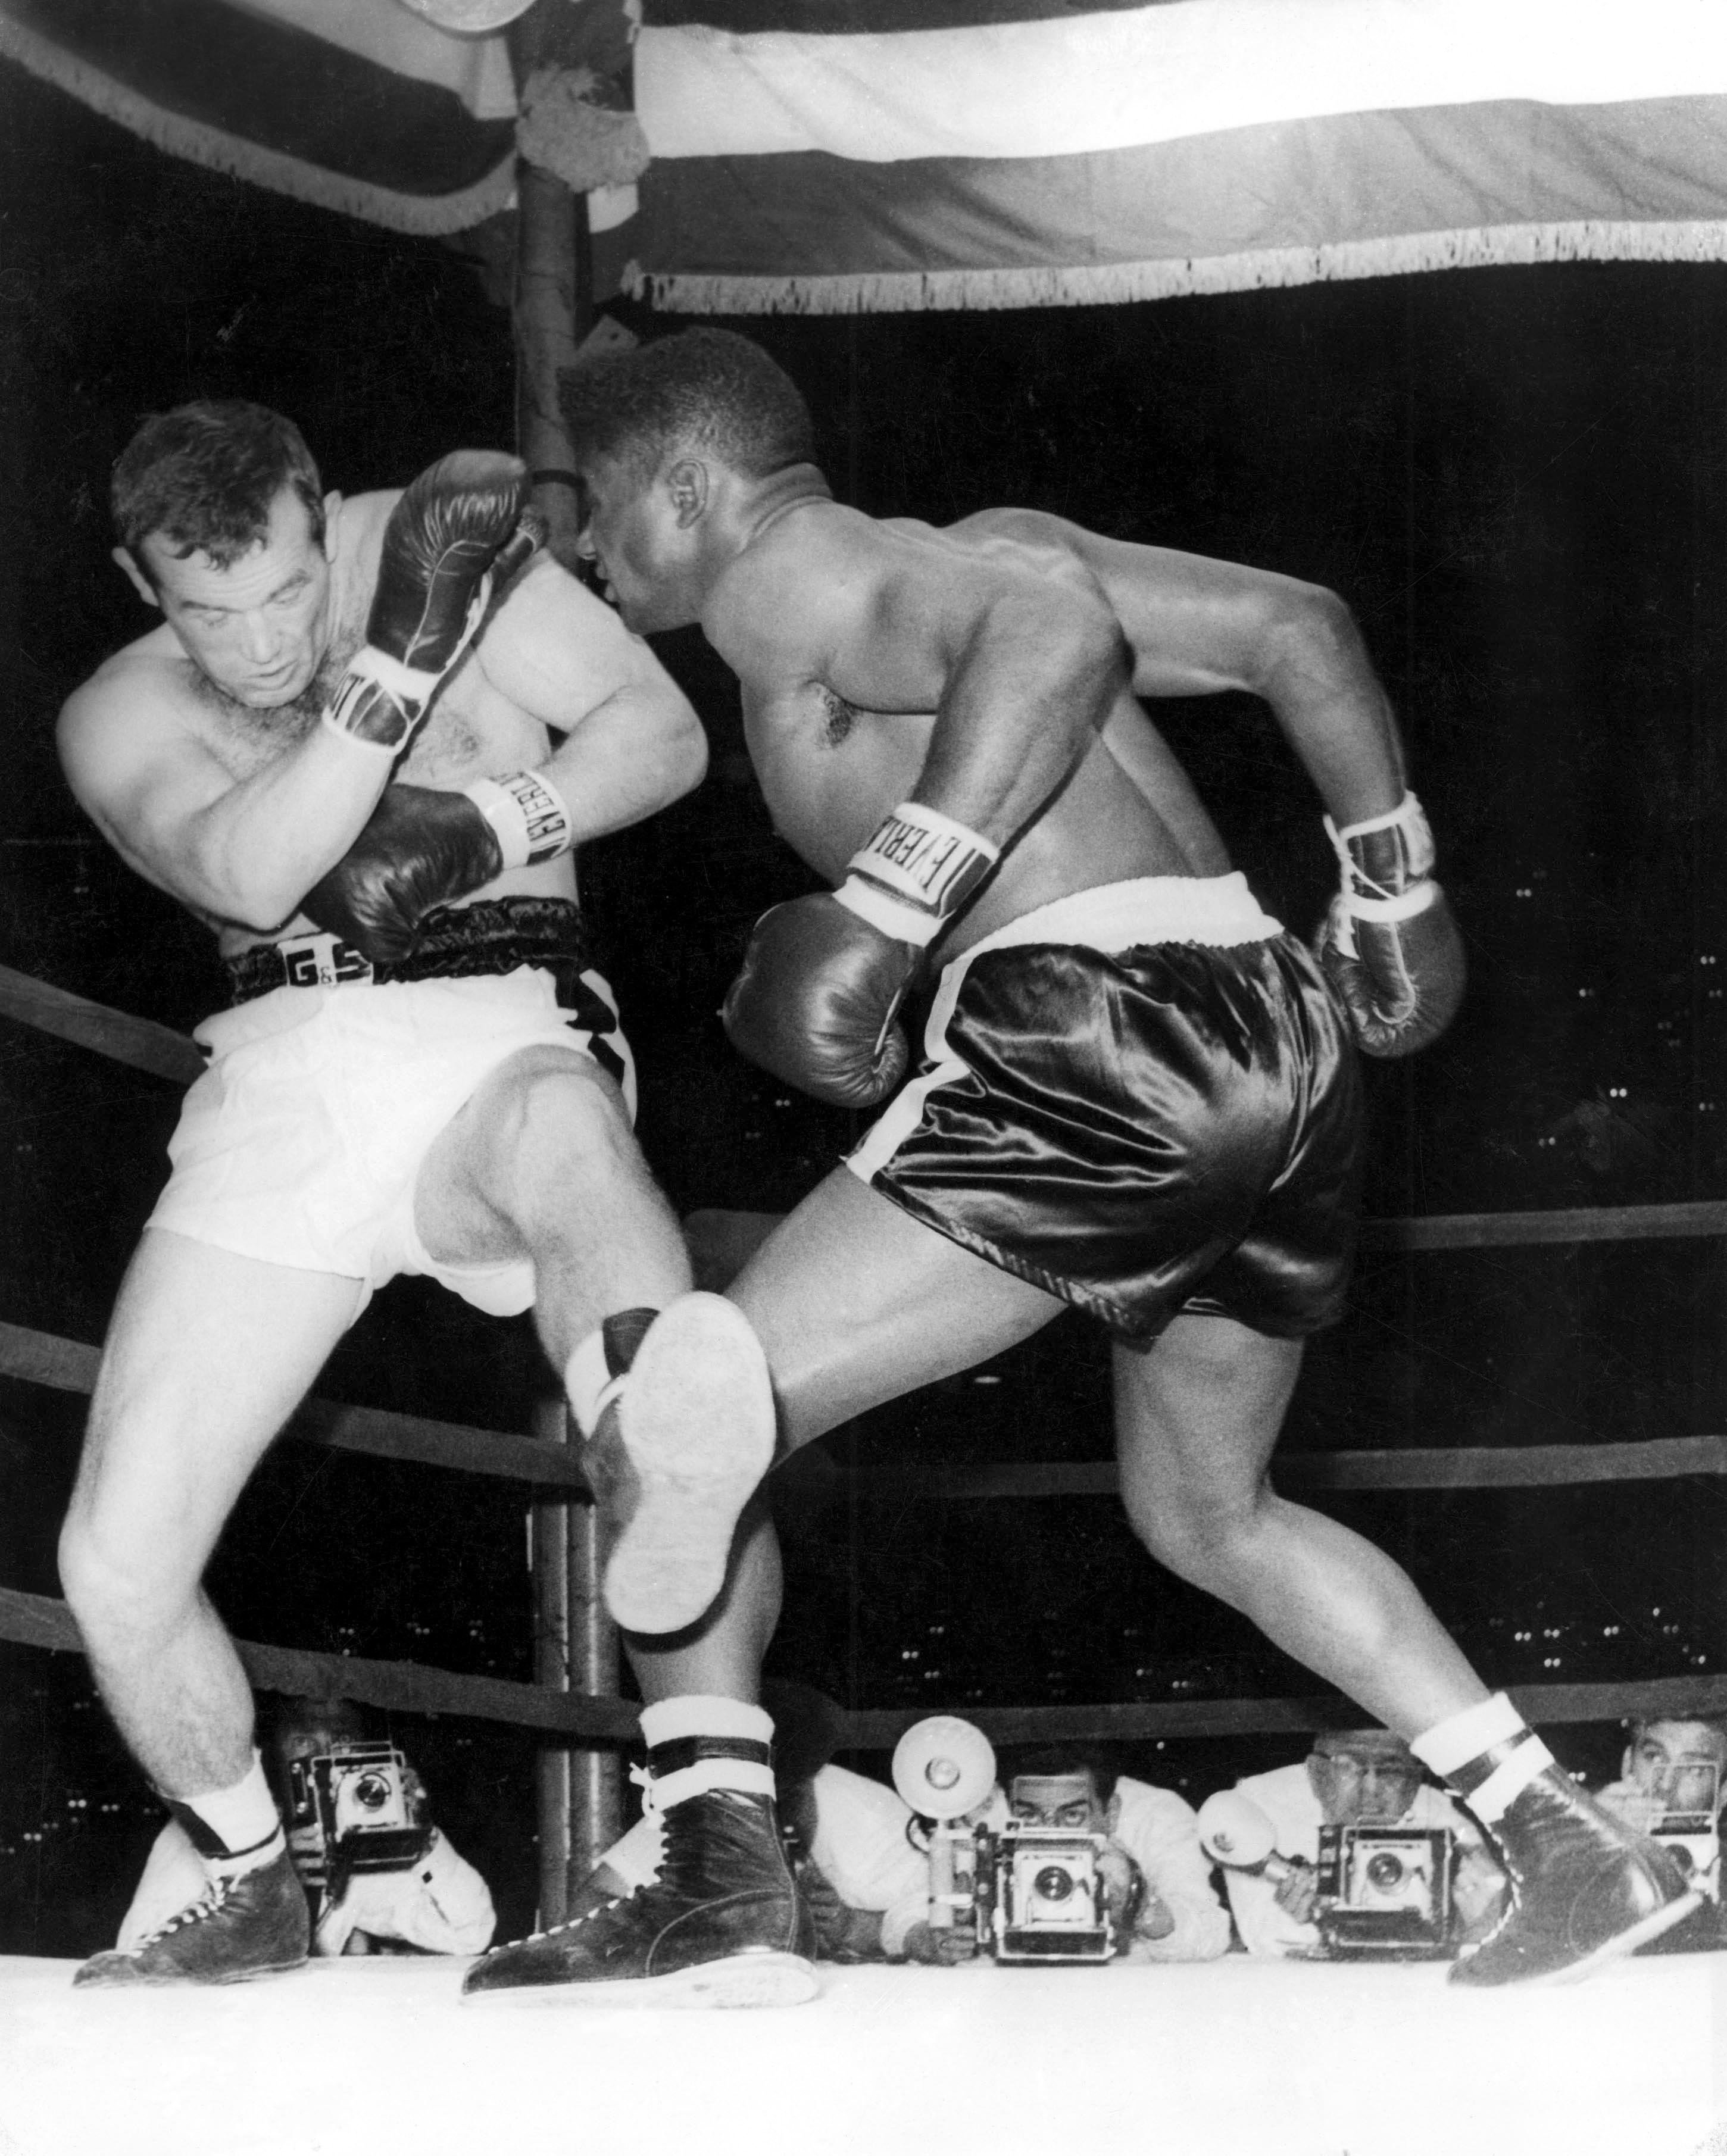 By knocking out world heavyweight boxing champion, Swedish Ingemar Johansson, in the fifth round of their title fight in New York, 25-year-old Floyd Patterson, made history as the only heavyweight champion of the world to regain his lost title. The fight was a complete reversal of the contest last June when Johansson, then the challenger, finished the fight and claimed the title in three rounds. Picture shows Johansson, forced against the ropes by Patterson's pushes, uses weird, unorthodox footwork, as he tries in vain to move away. 23rd June 1960